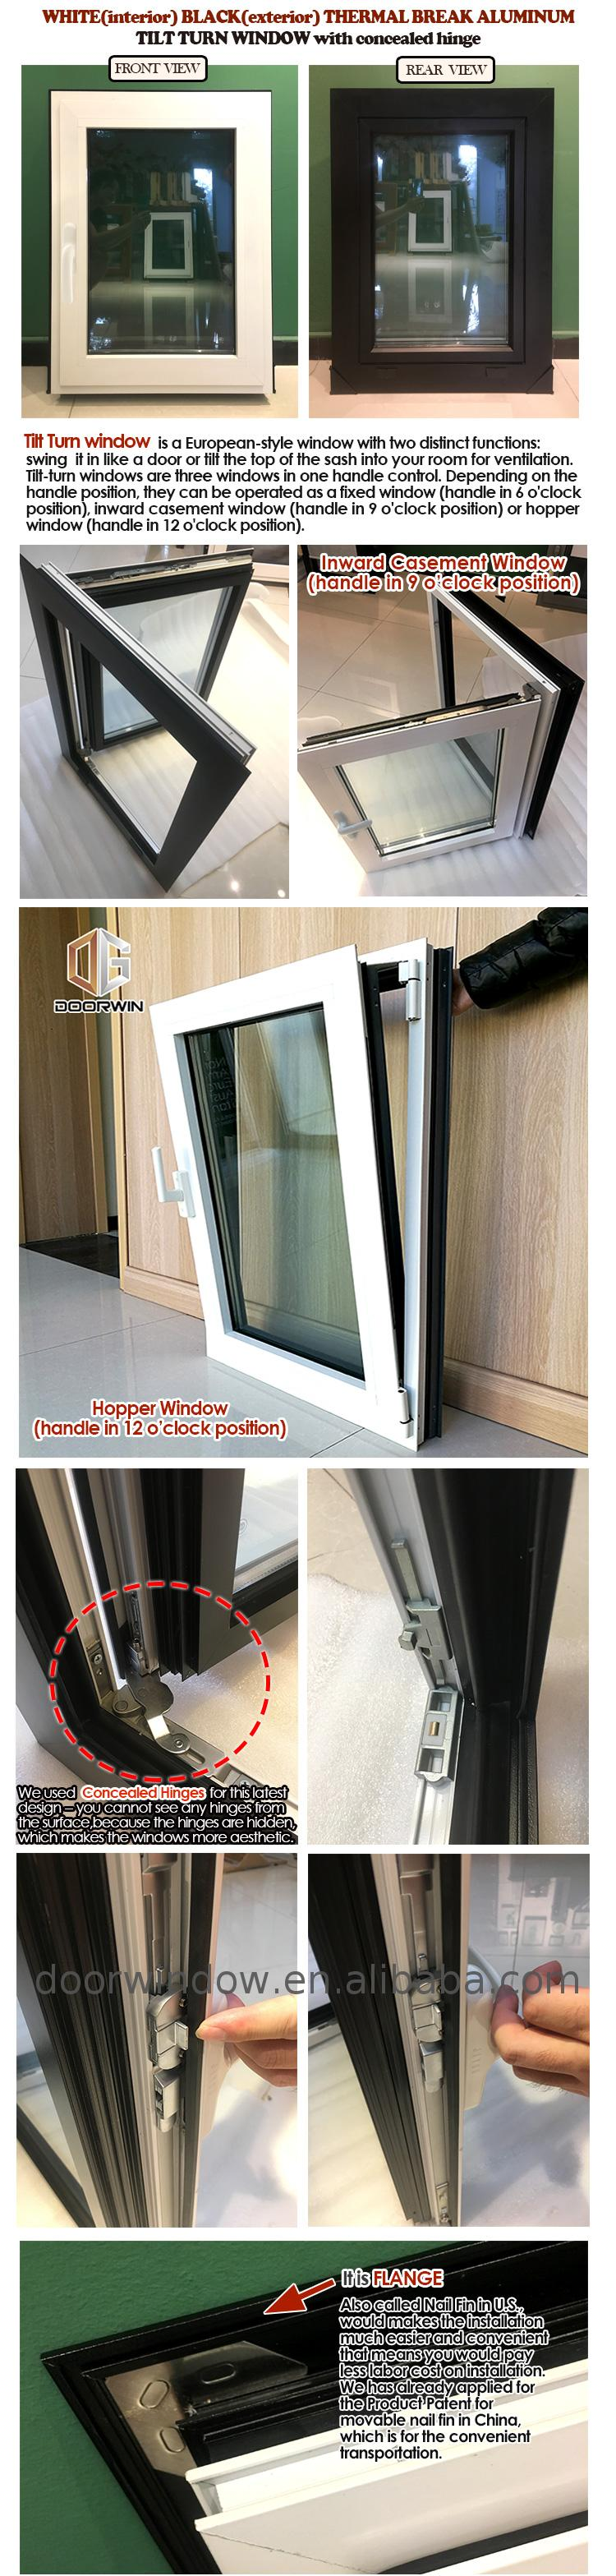 Double glazing window for house glazed aluminium windows doors